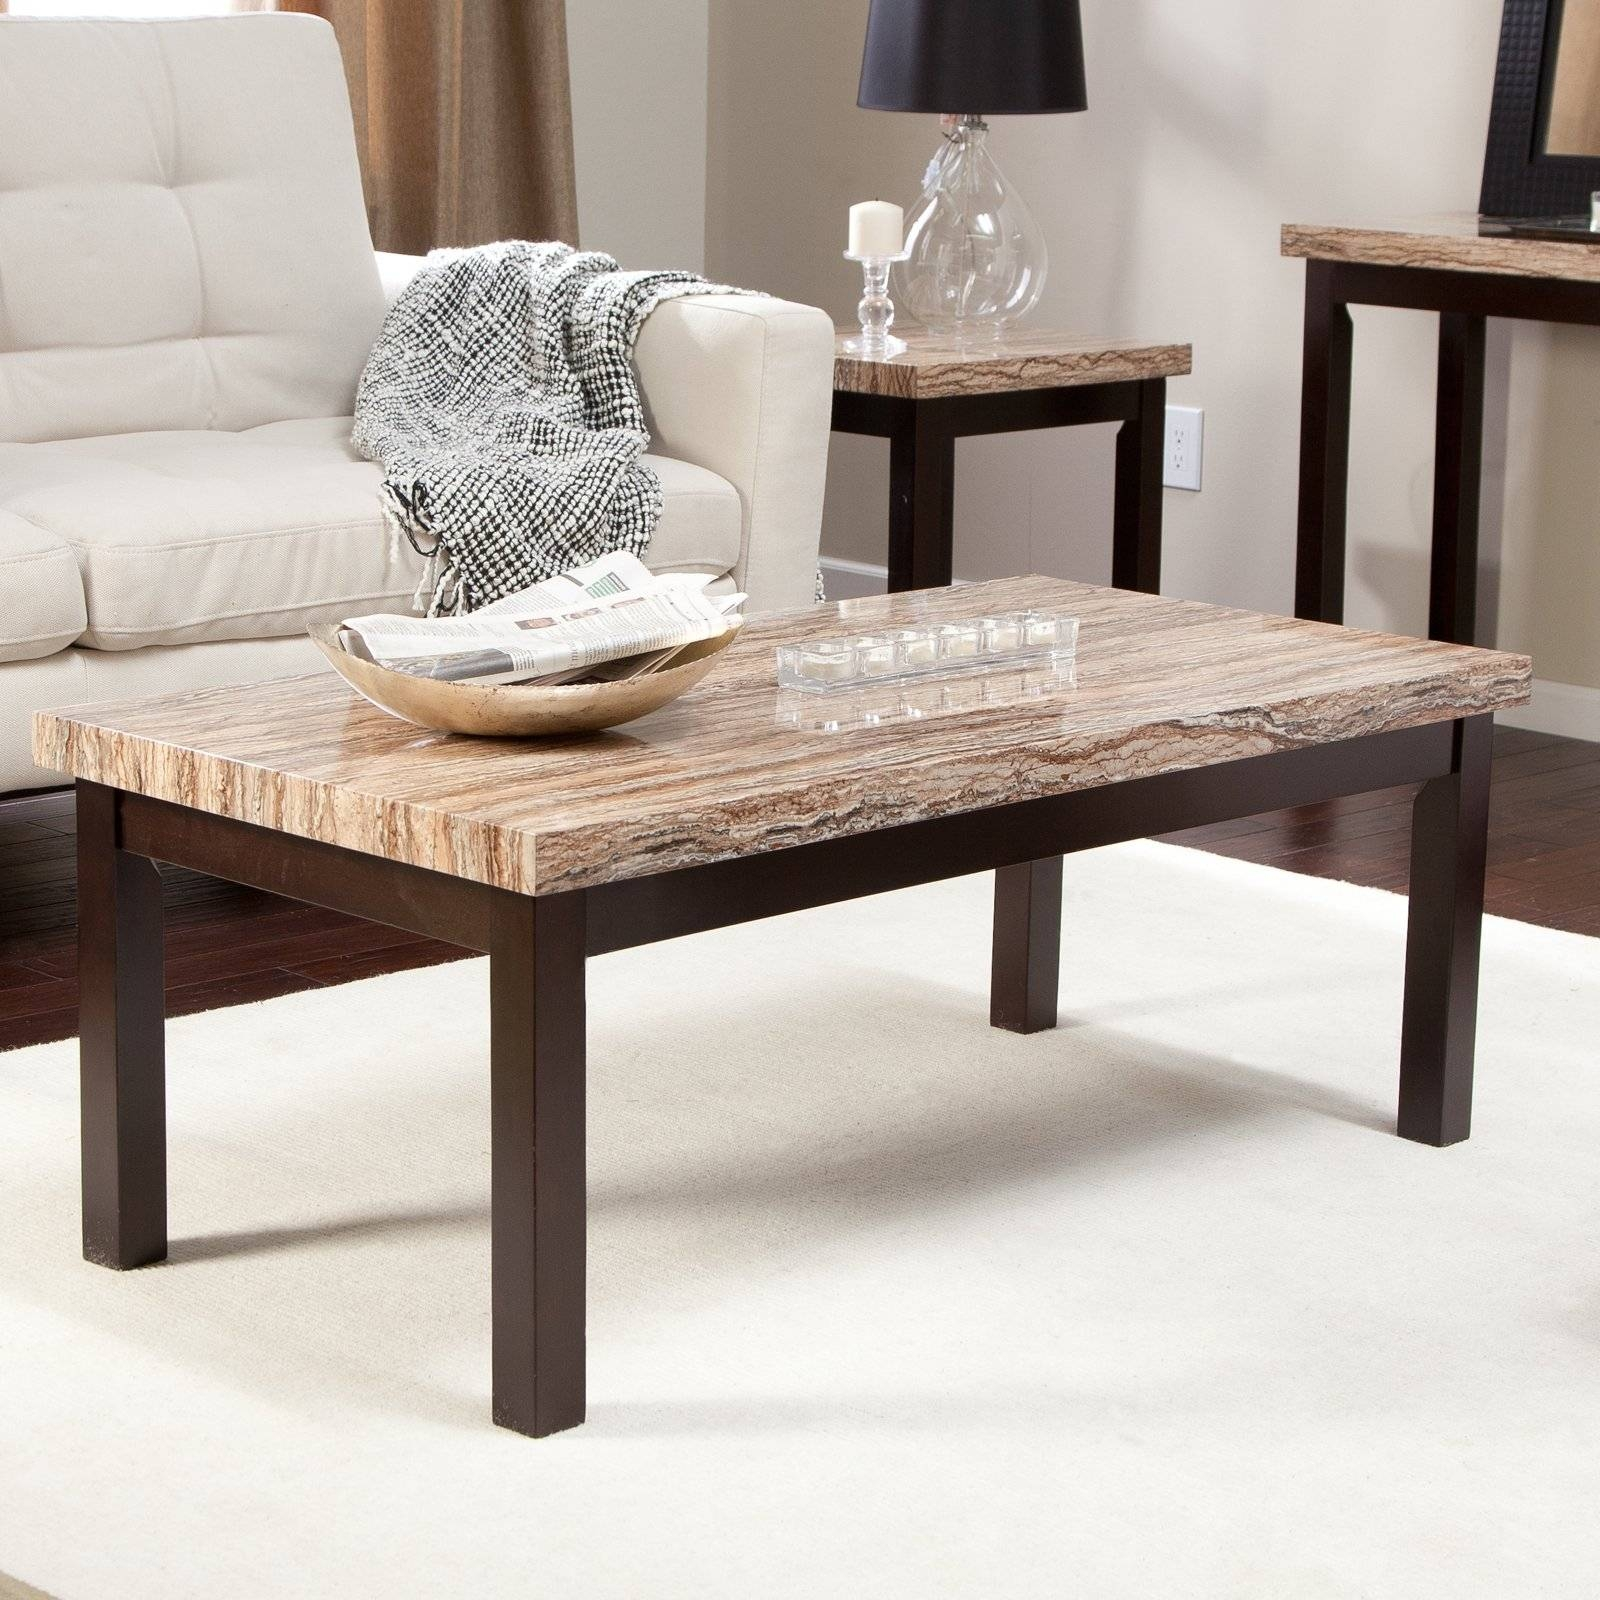 Galassia Faux Marble Coffee Table | Hayneedle throughout White Marble Coffee Tables (Image 16 of 30)